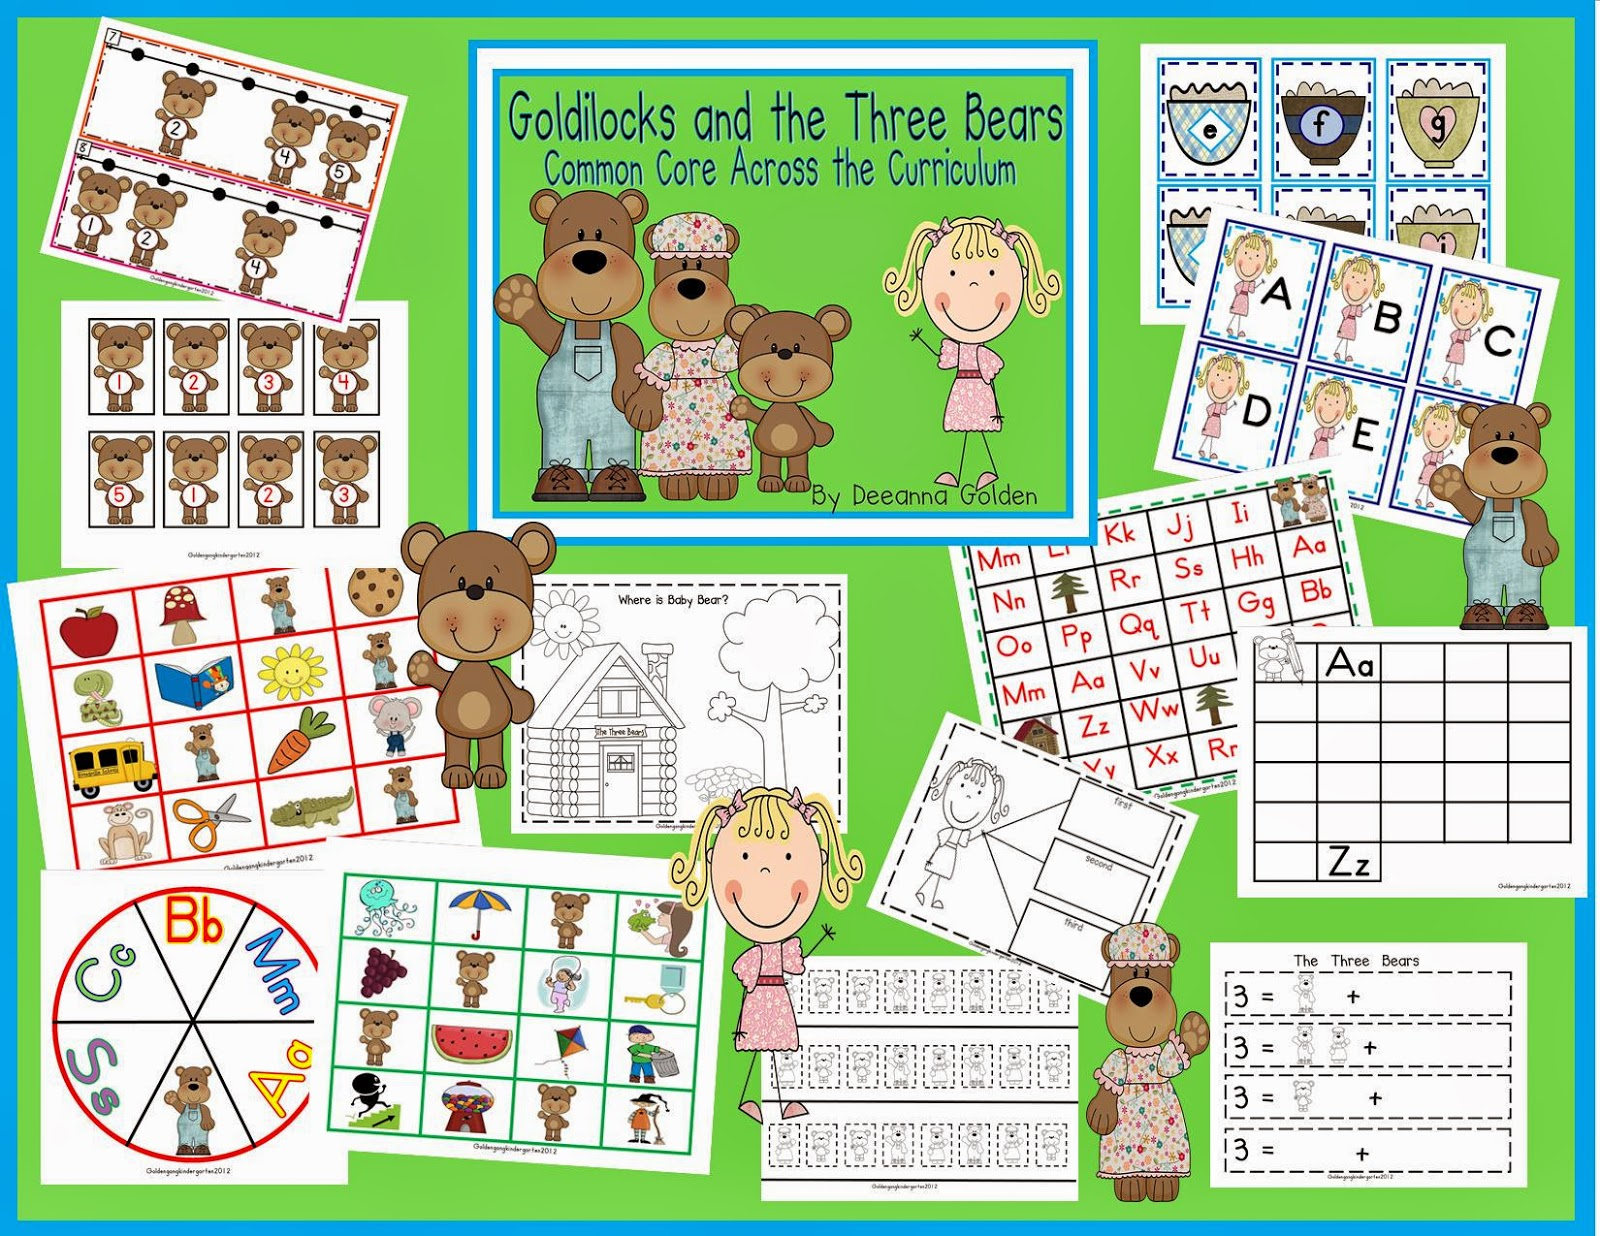 http://www.teacherspayteachers.com/Product/Goldilocks-and-the-Three-Bears-Common-Core-Across-the-Curriculum-318604